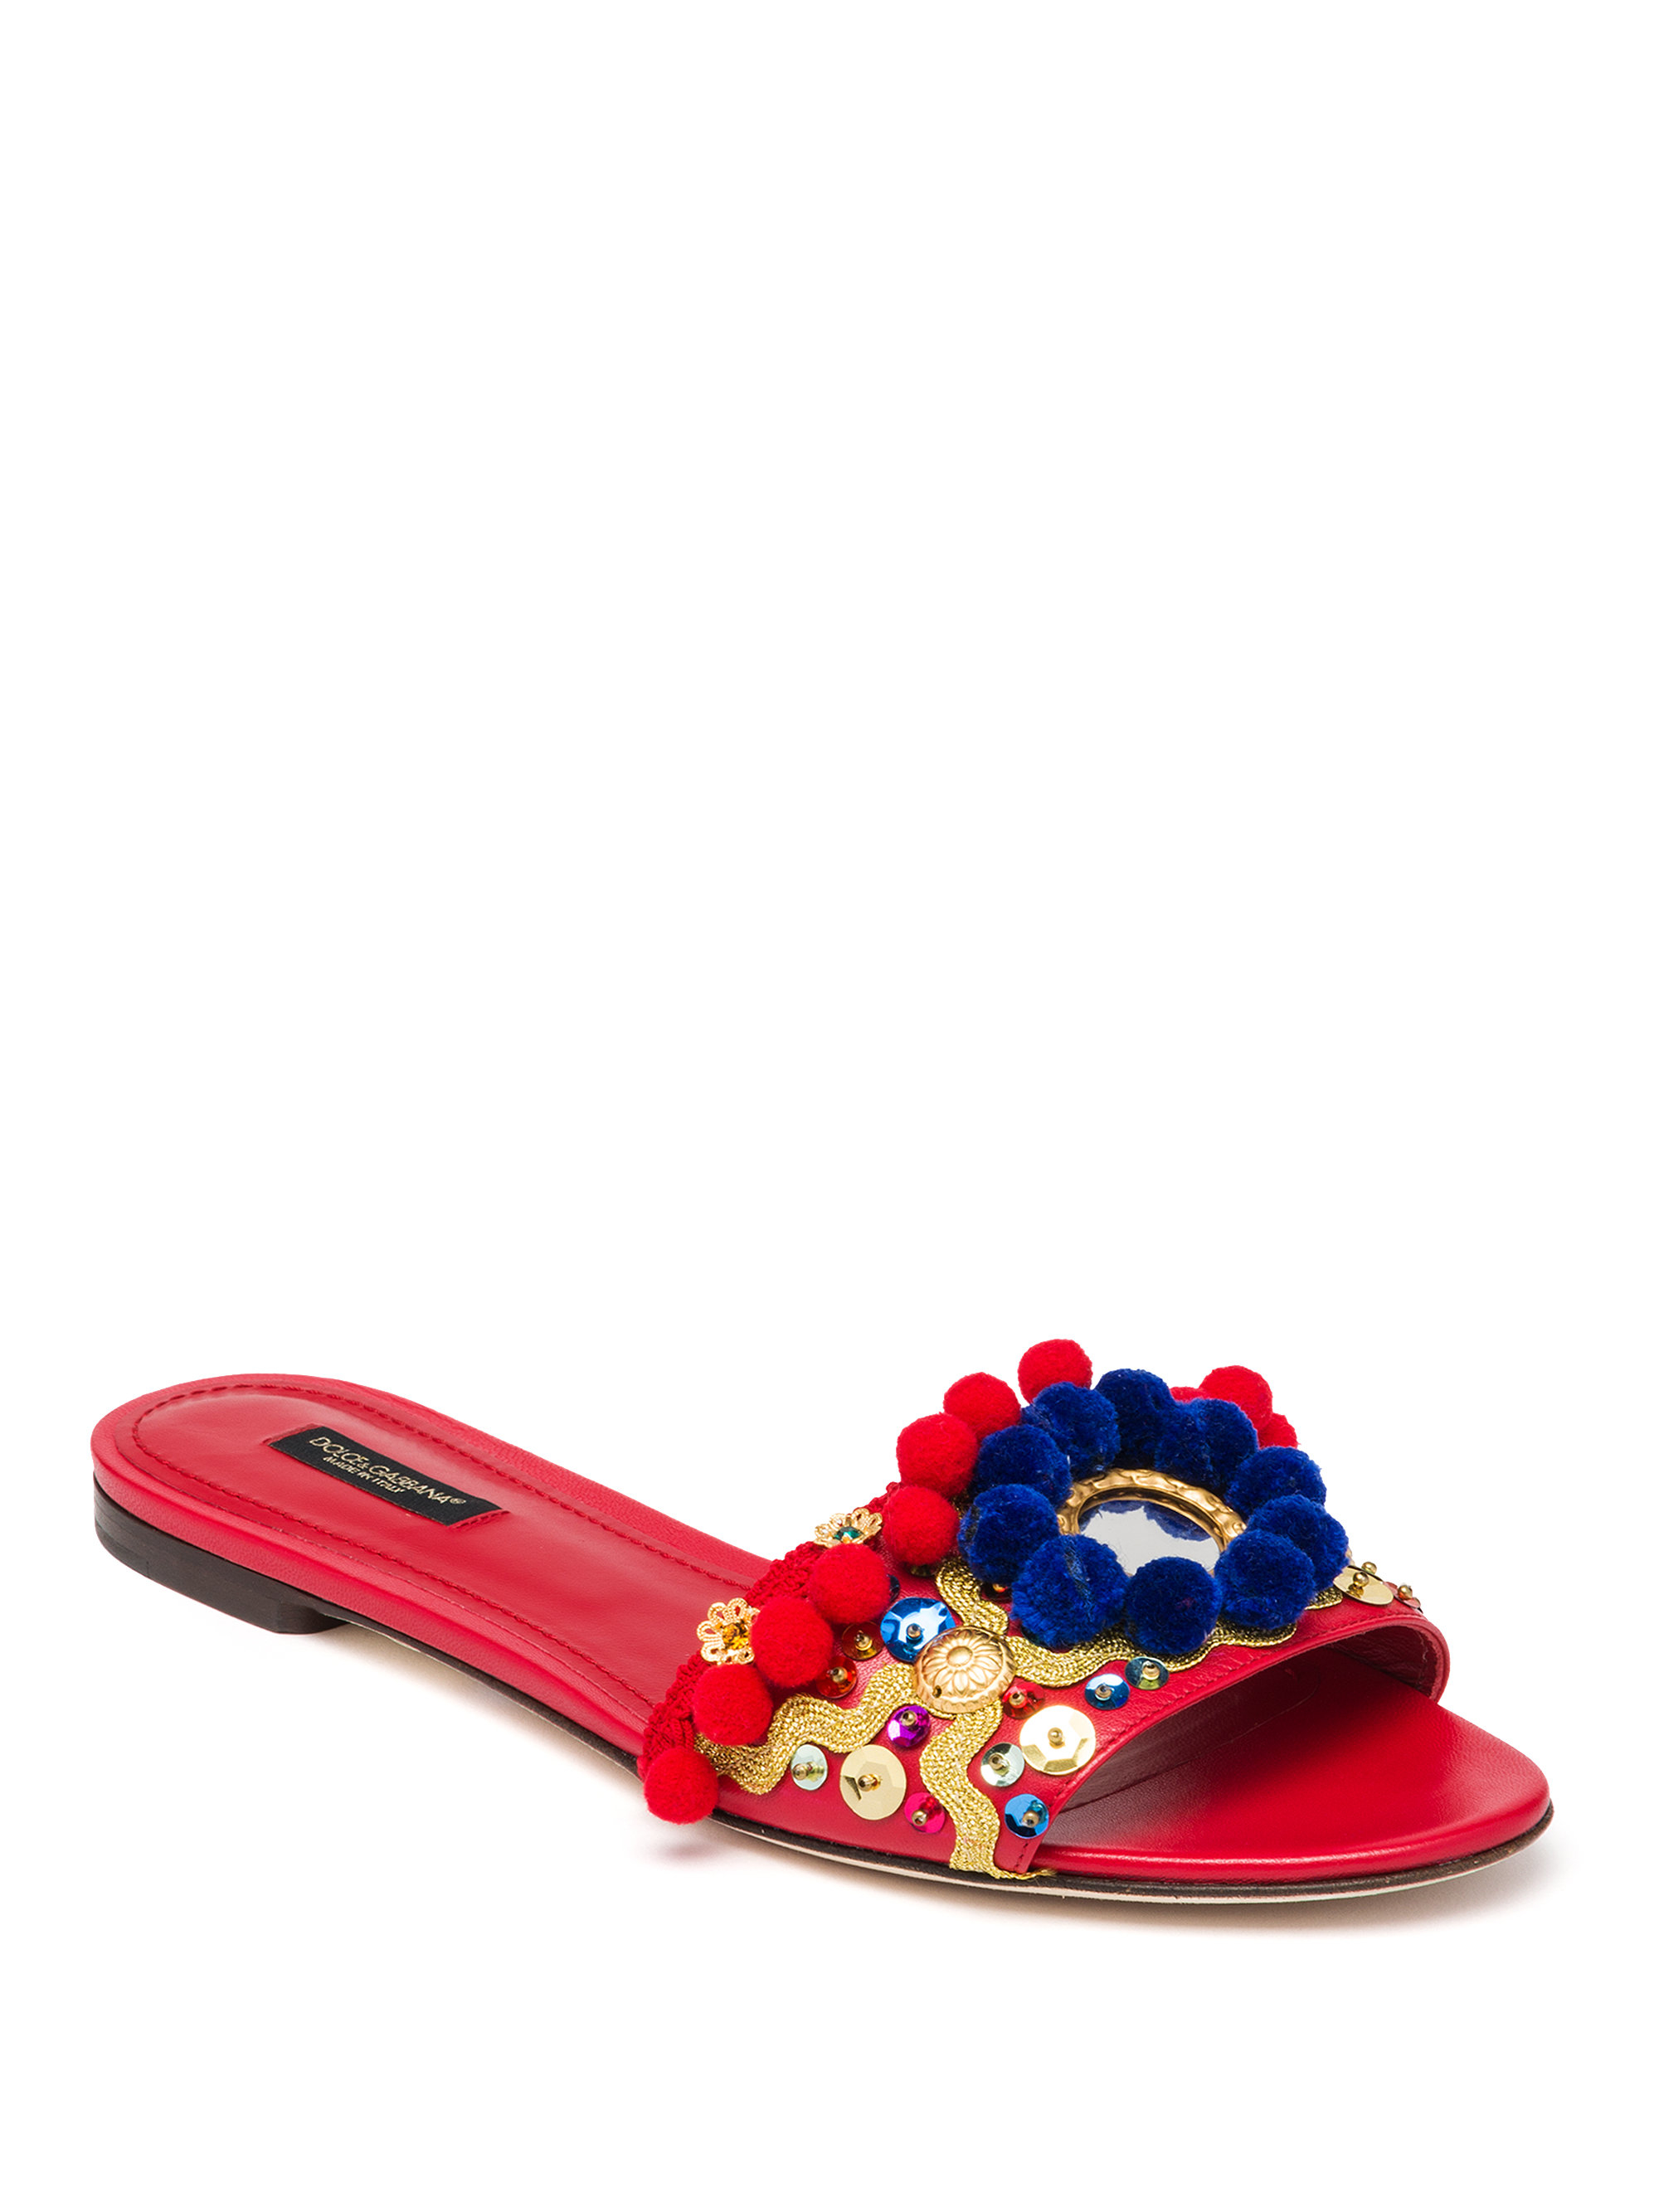 discount wholesale price Dolce & Gabbana Studded Slide Sandals extremely online Inexpensive for sale cost for sale 0ybyI